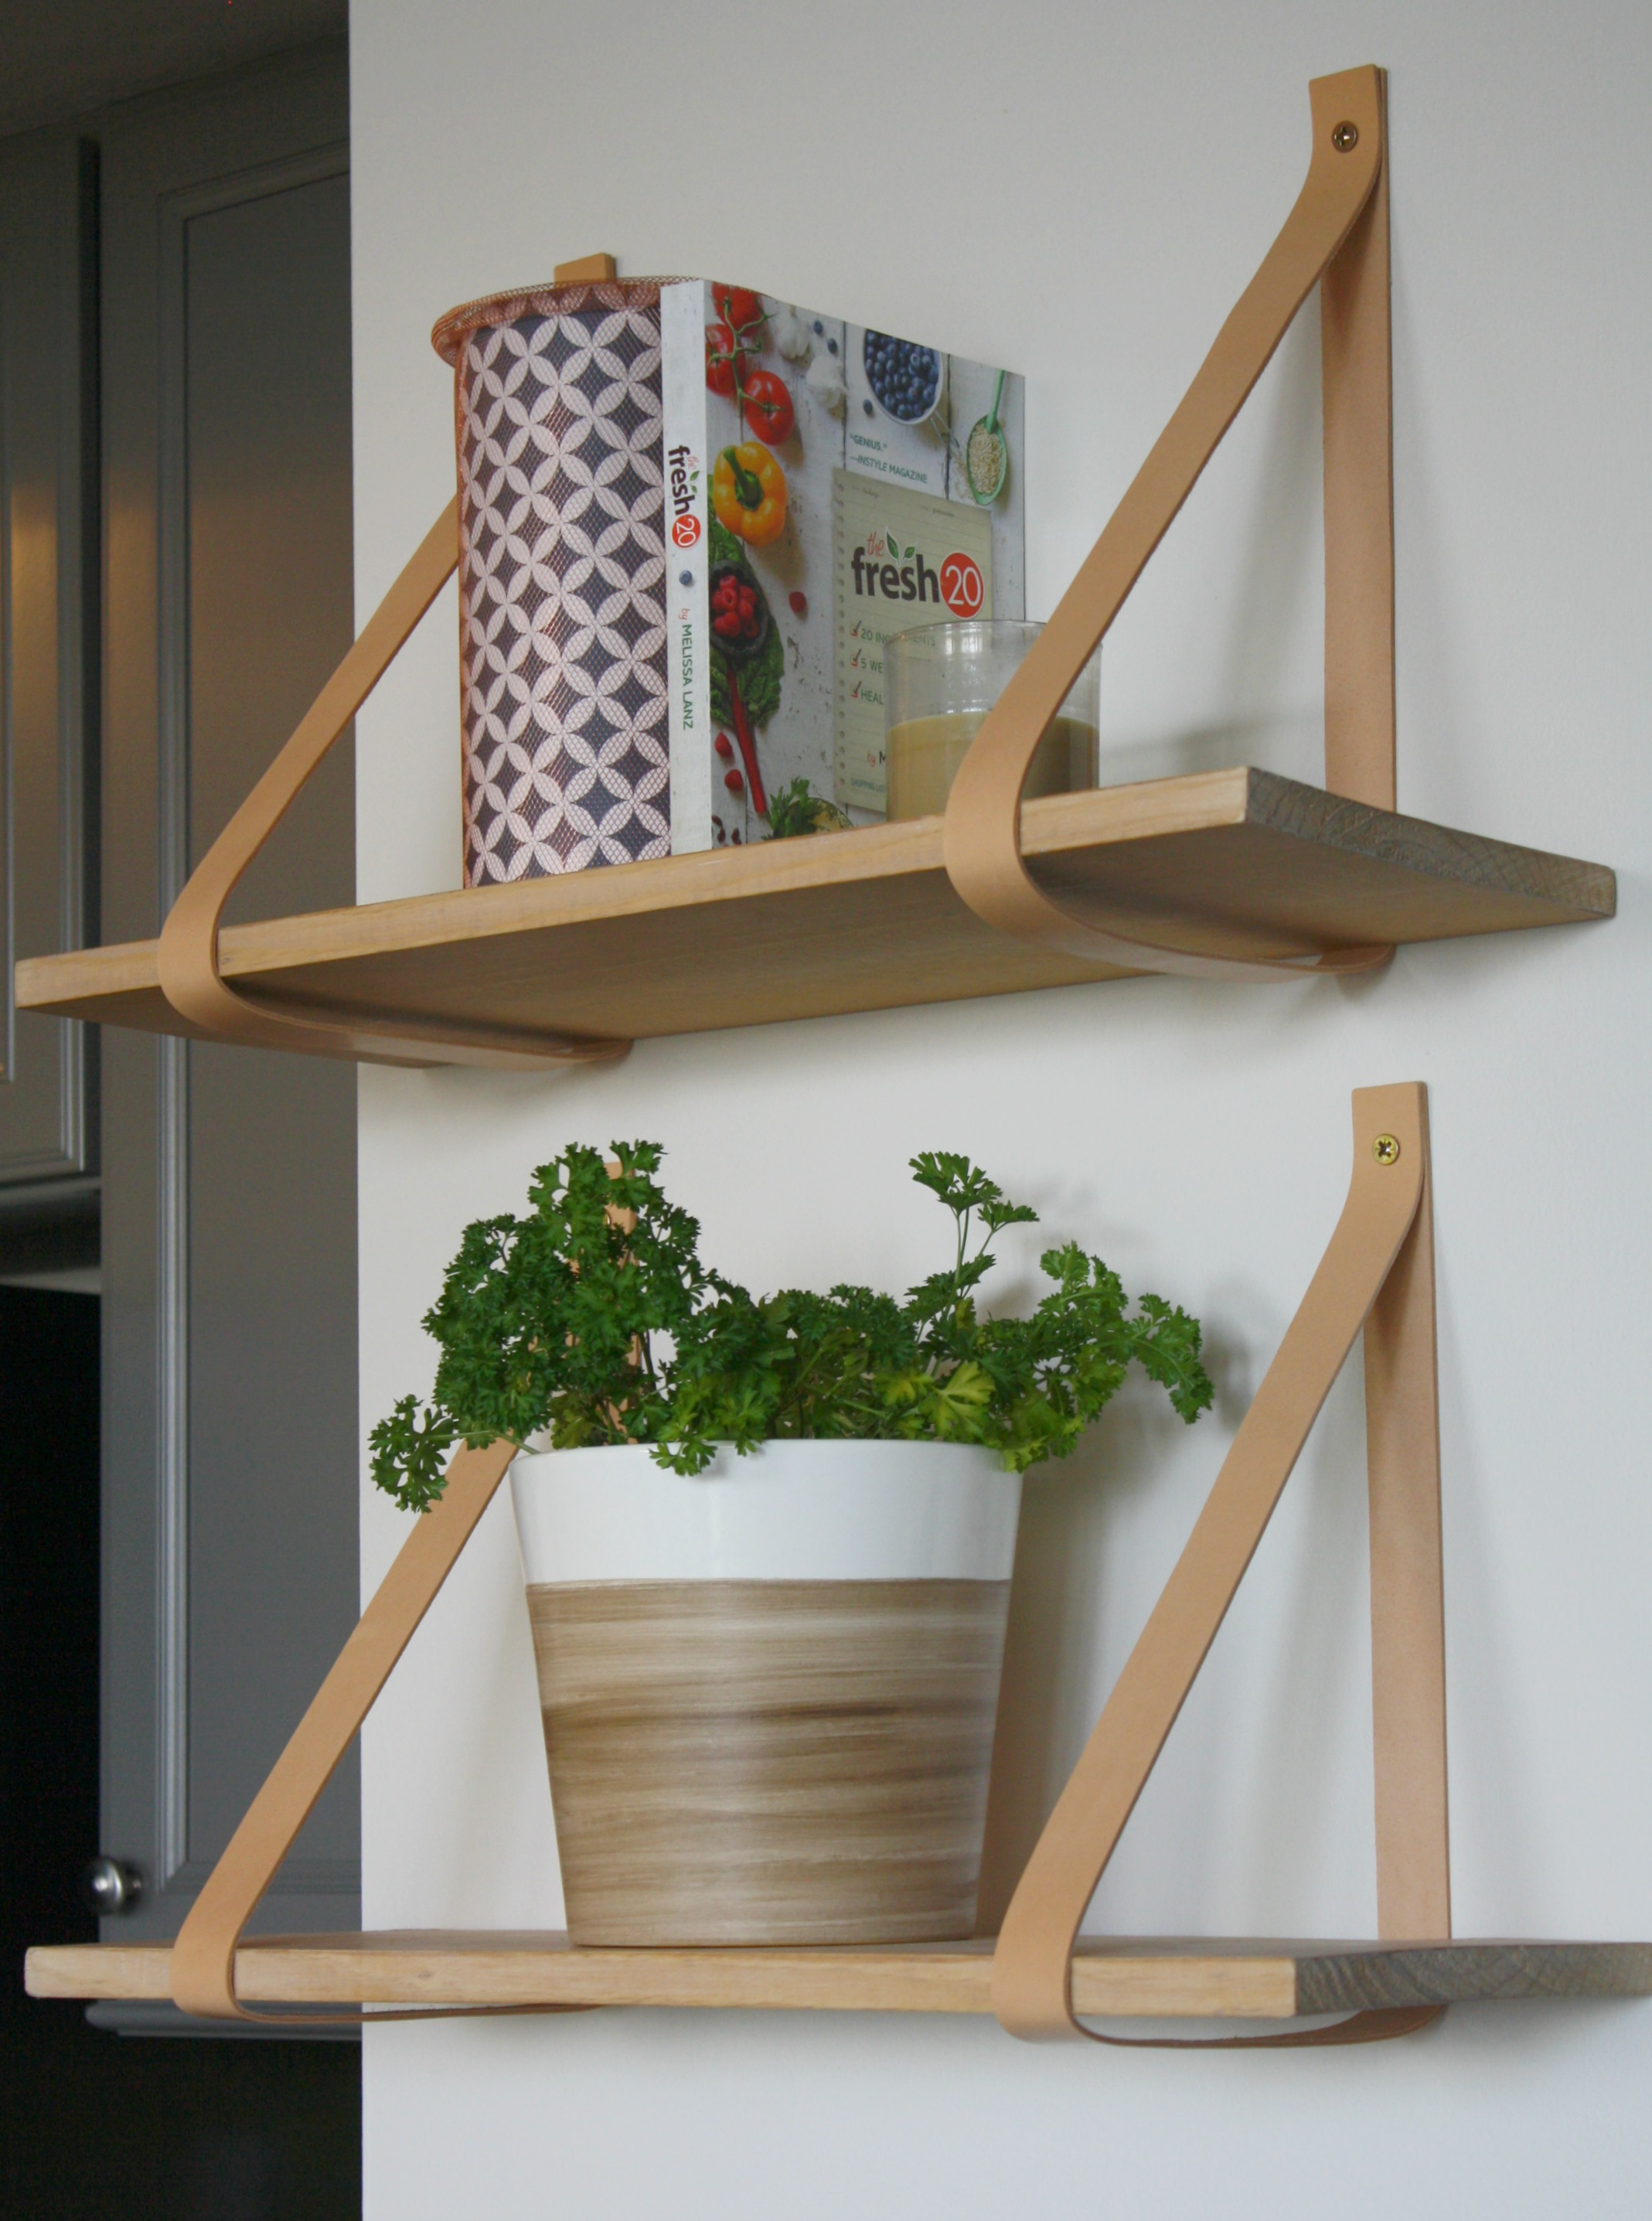 tutorials leather strap shelves - myfrenchtwist.com